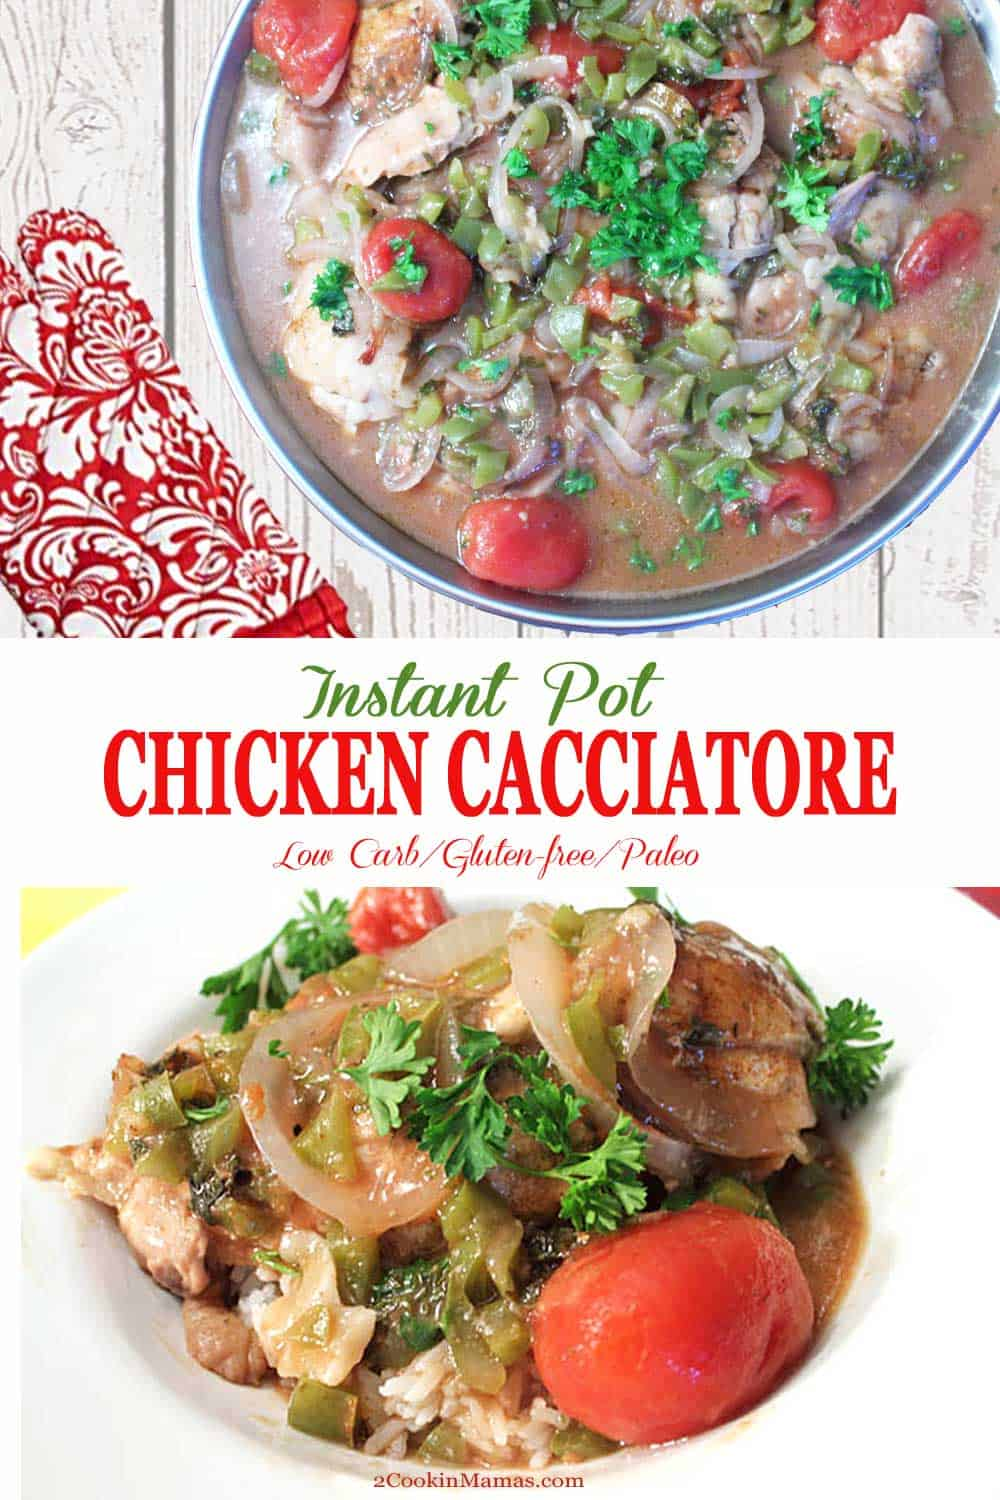 Instant Pot Chicken Cacciatore | 2 Cookin Mamas An easy Instant Pot Chicken Cacciatore dinner that tastes as good as the original in less than half the time. All the delicious flavors of the Italian favorite you love - tomatoes, peppers, onion and spices, all simmered together in one pot! And that means easy cleanup and a delicious dinner in no time! Great for gluten-free, low carb and paleo diets. #dinner #chicken #easyrecipe #recipe #instantpot #pressurecooker #lowcarb #paleo #glutenfree